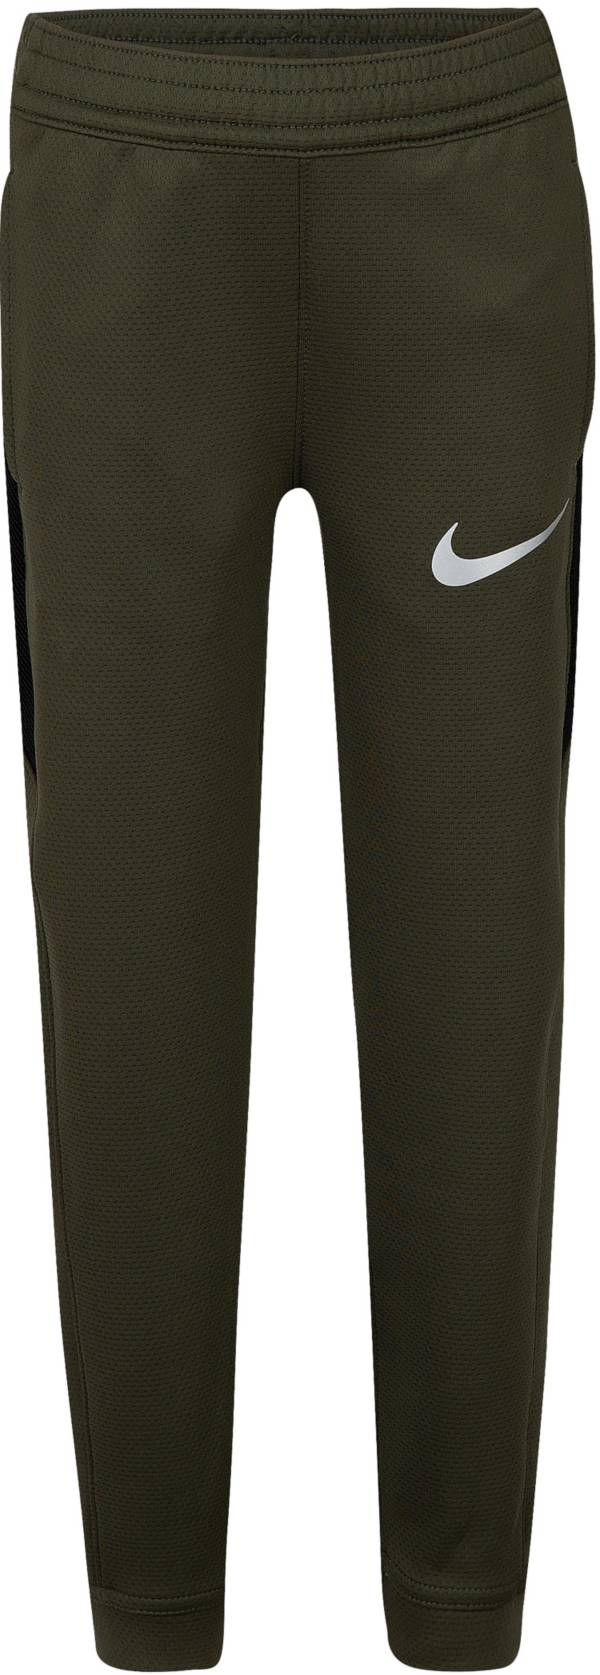 Nike Boys' Therma Flex Showtime Pants product image